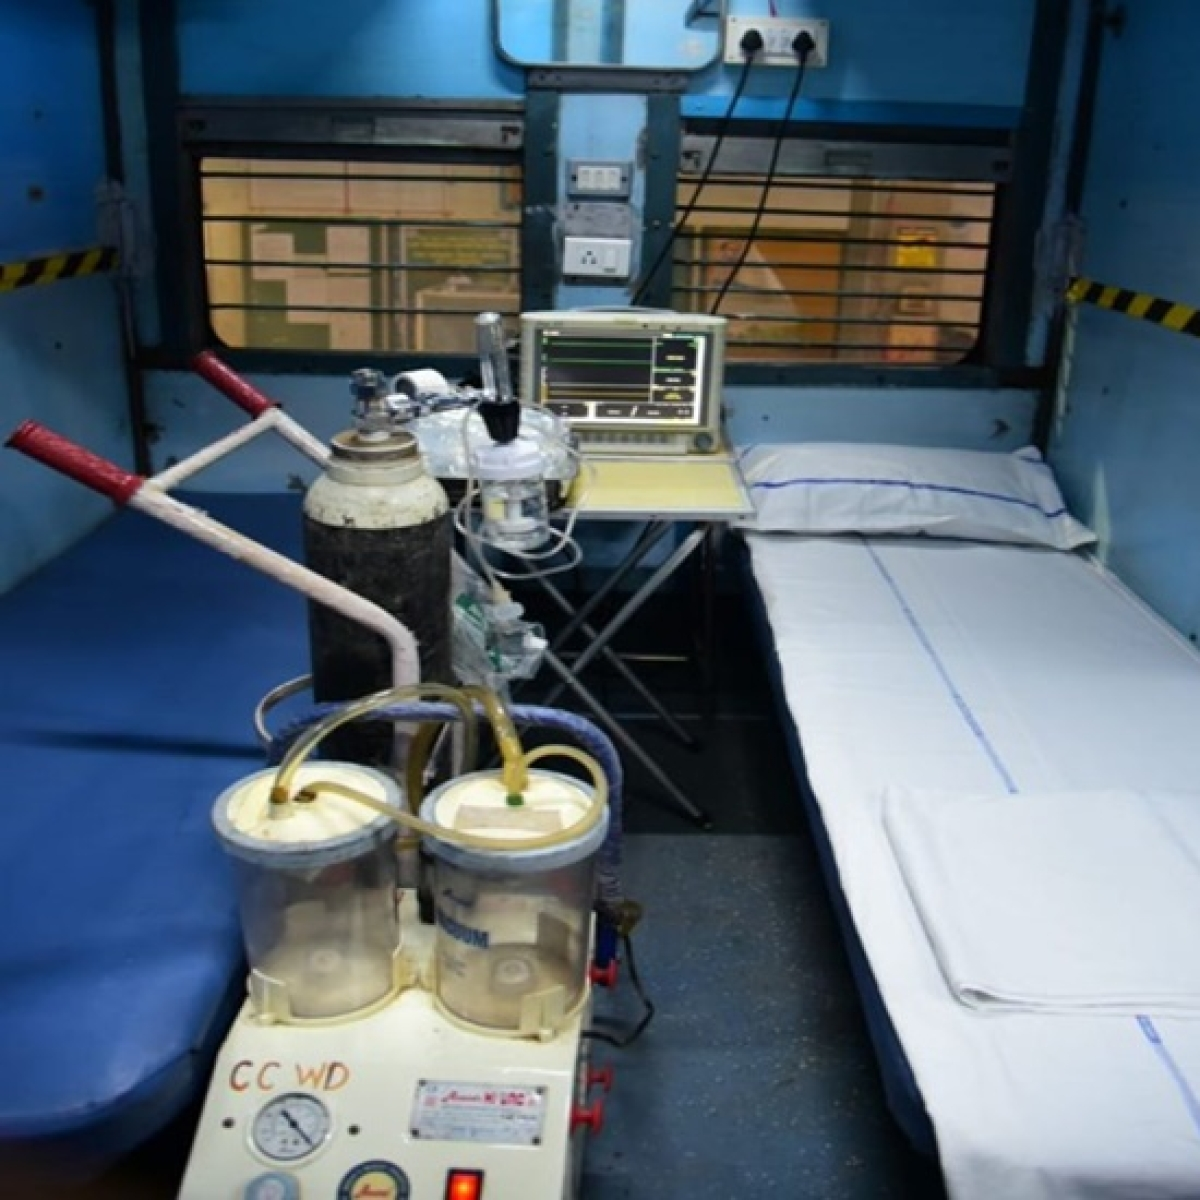 Railways to convert 503 coaches into isolation wards for Covid-19 patients in Delhi-NCR